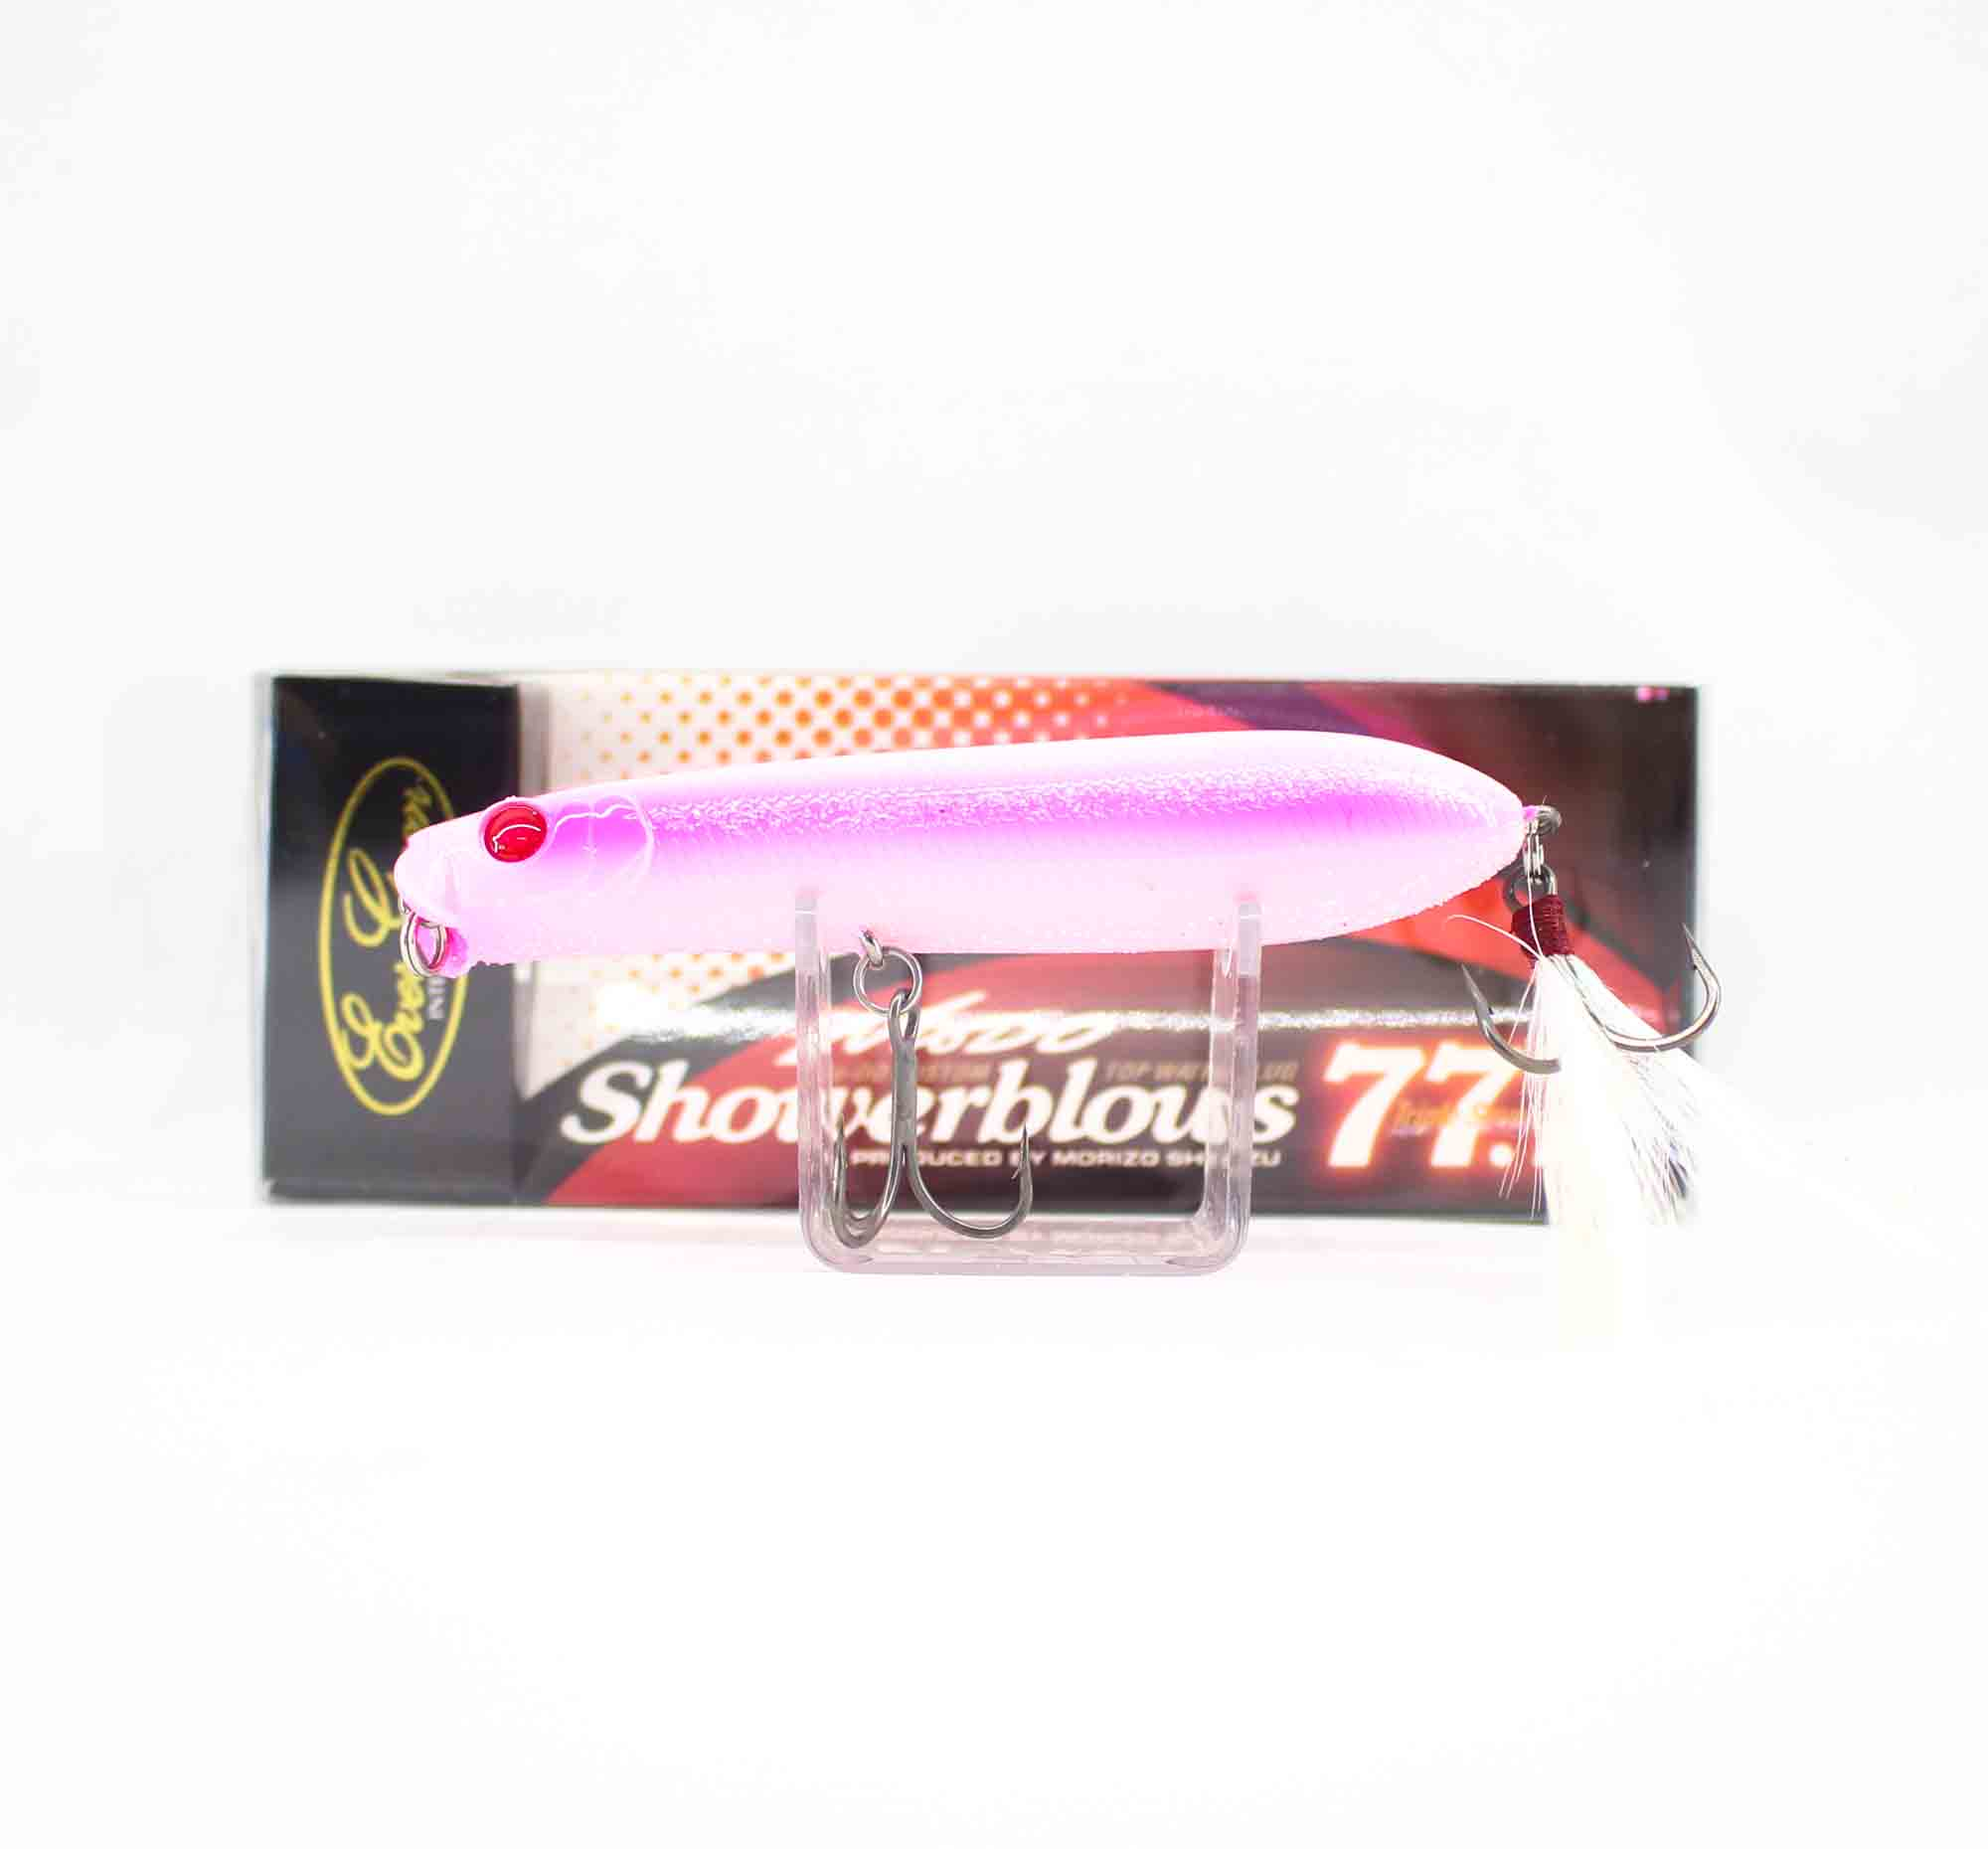 Evergreen Shower Blows 77.7 Pencil Floating Lure 208 (7389)